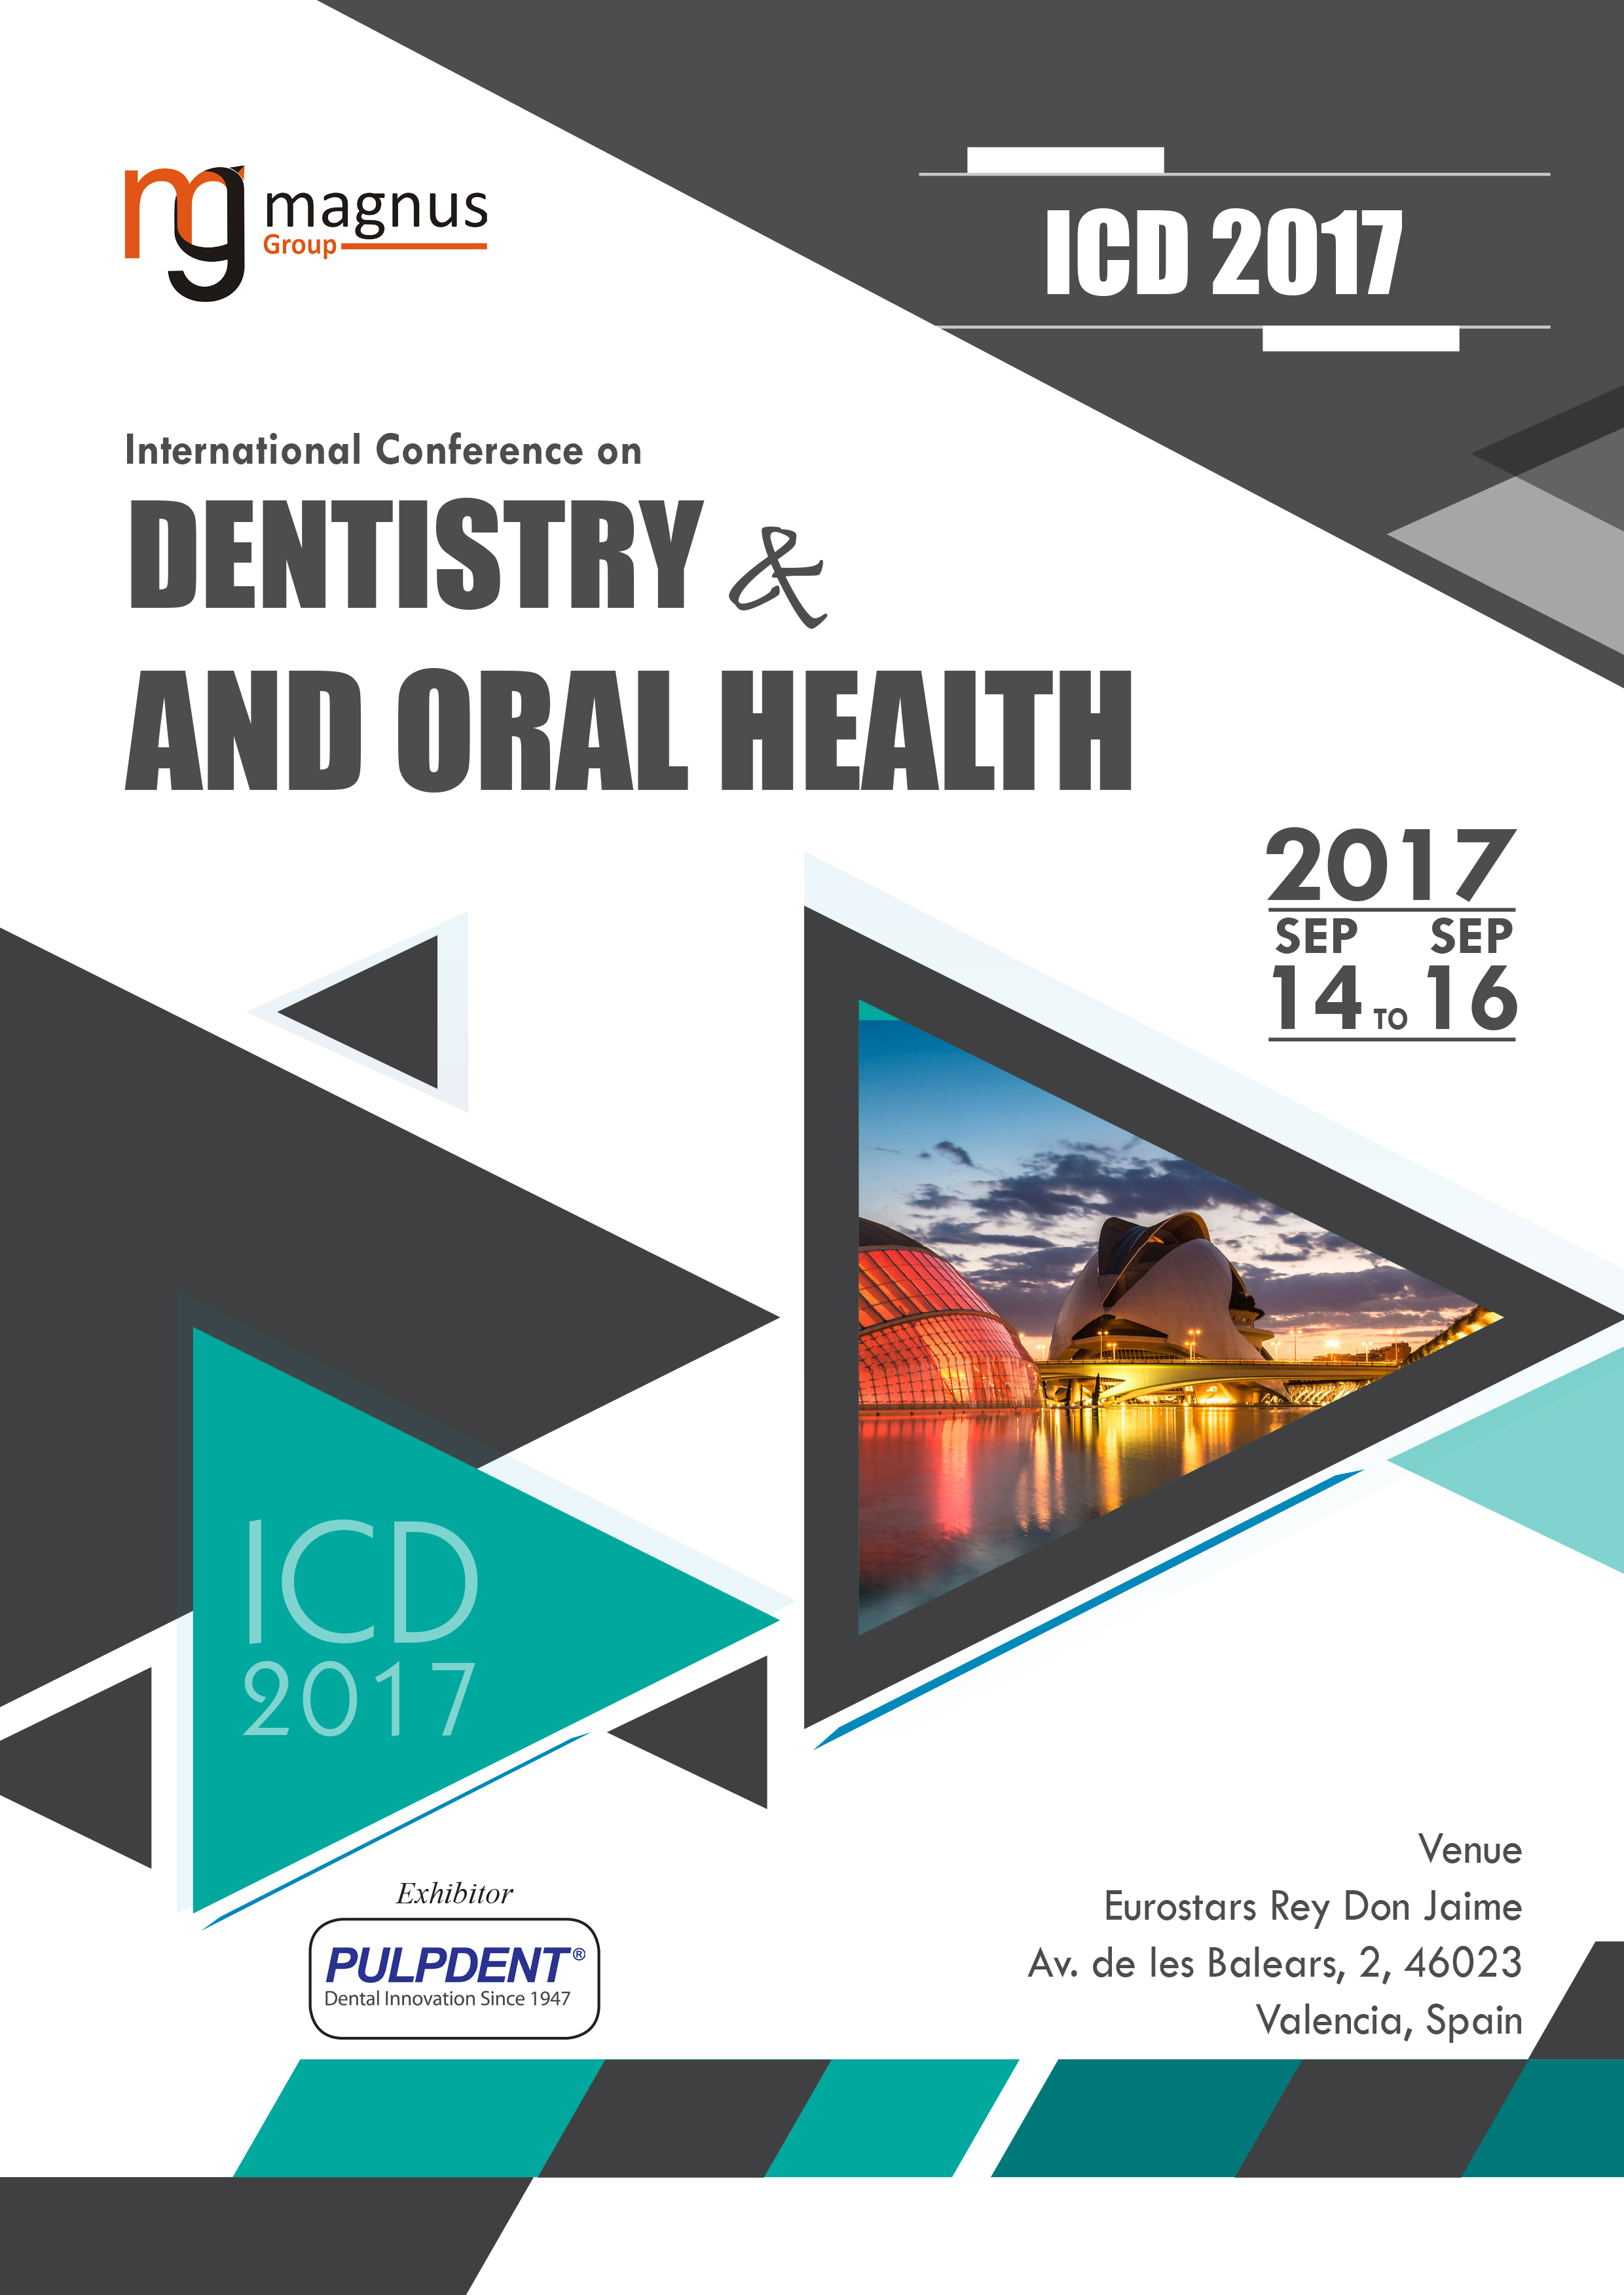 International Conference on Dentistry and Oral Health Book